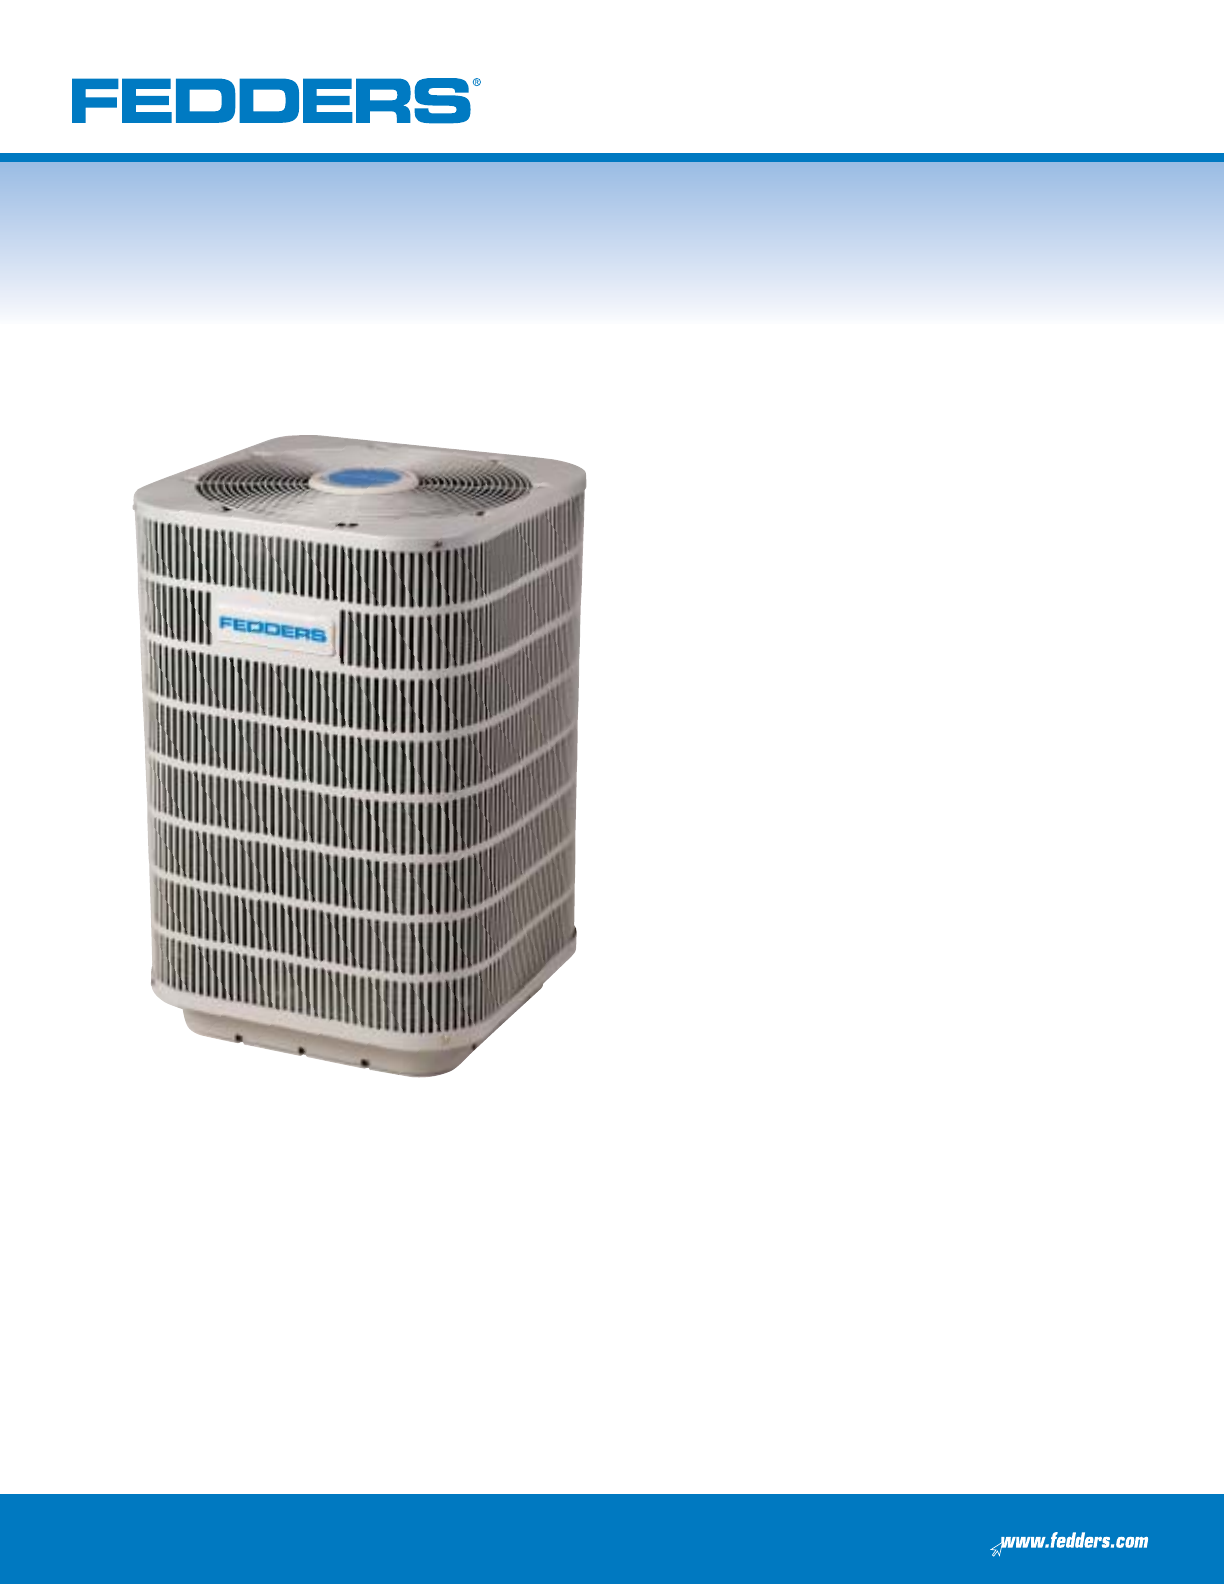 #037BC2 Fedders Humidifier C10 User Guide ManualsOnline.com Recommended 1477 Best Rated Heat Pumps pics with 1224x1584 px on helpvideos.info - Air Conditioners, Air Coolers and more